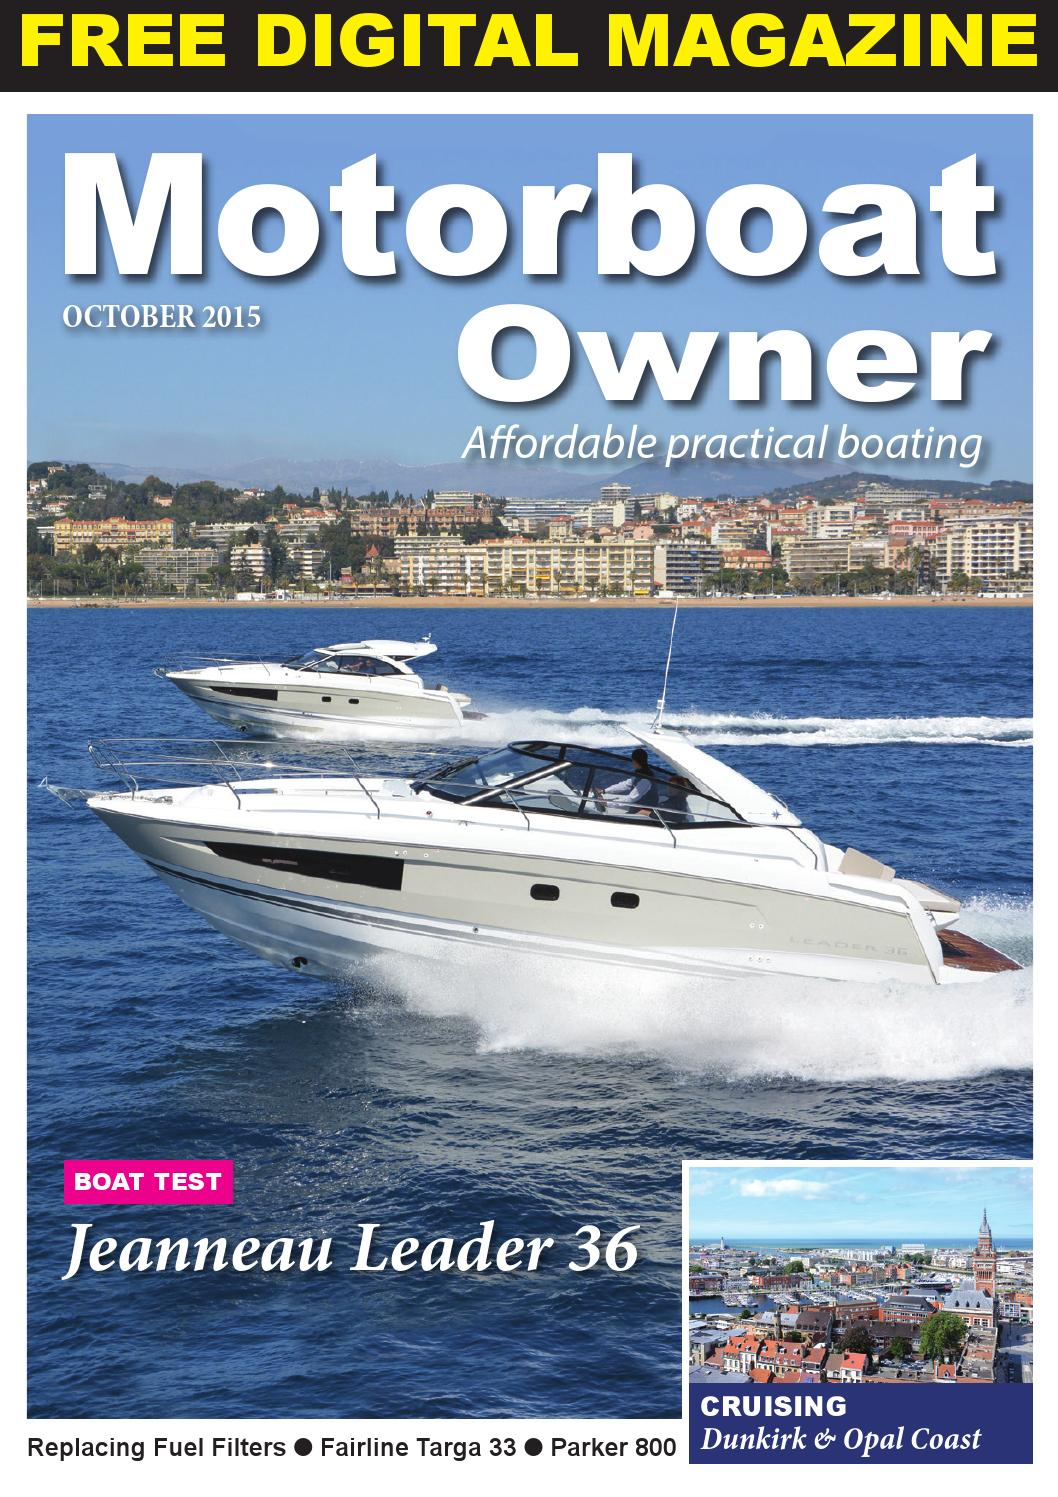 Motorboat Owner October 15 By Digital Marine Media Ltd Issuu Parker Fuel Filter